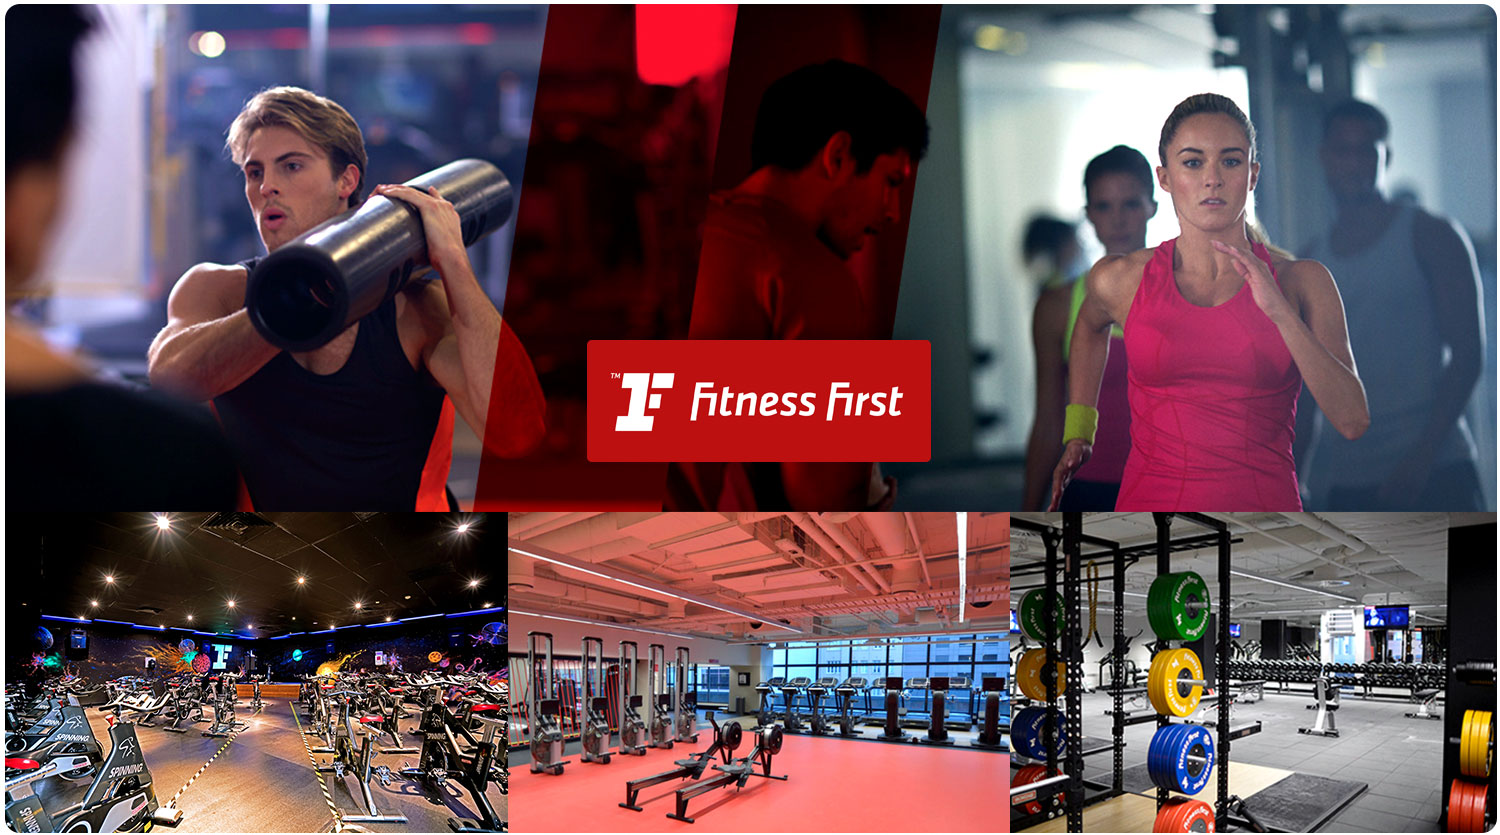 Start your Fitness Journey with Fitness First with only $9.95 for 1 week at Fitness First Mermaid Waters. Experience our first class gym and freestyle classes inc. Les Mills, Yoga, Pilates and more + swimming pool access. Take the first step with Fitness First Mermaid Waters.